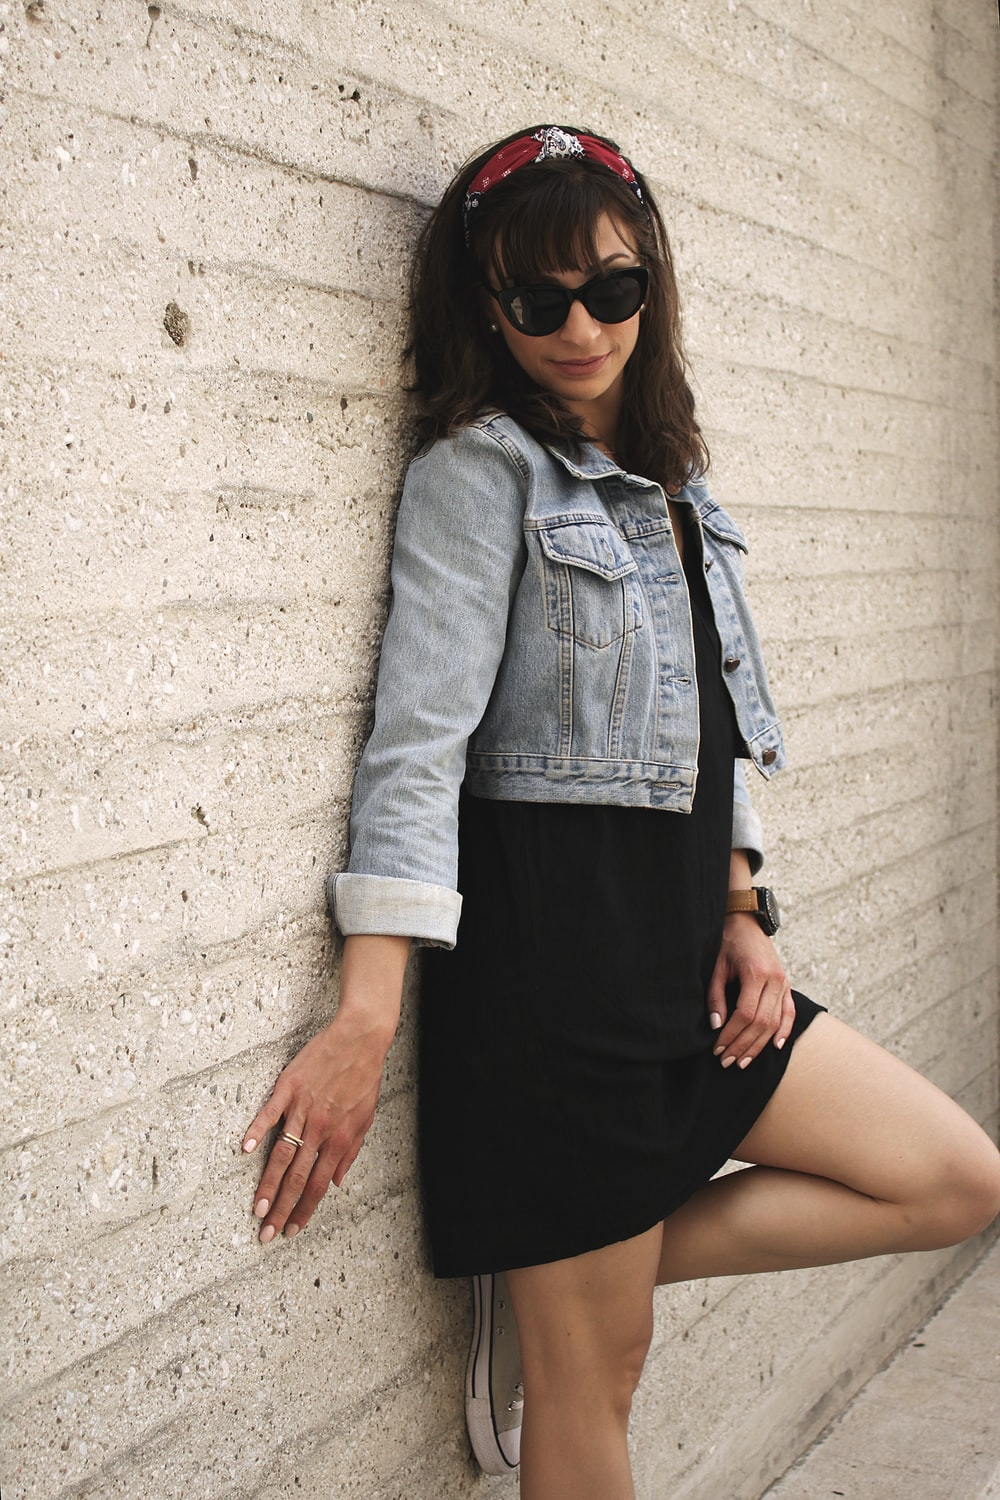 woman leaning on white concrete wall during daytime